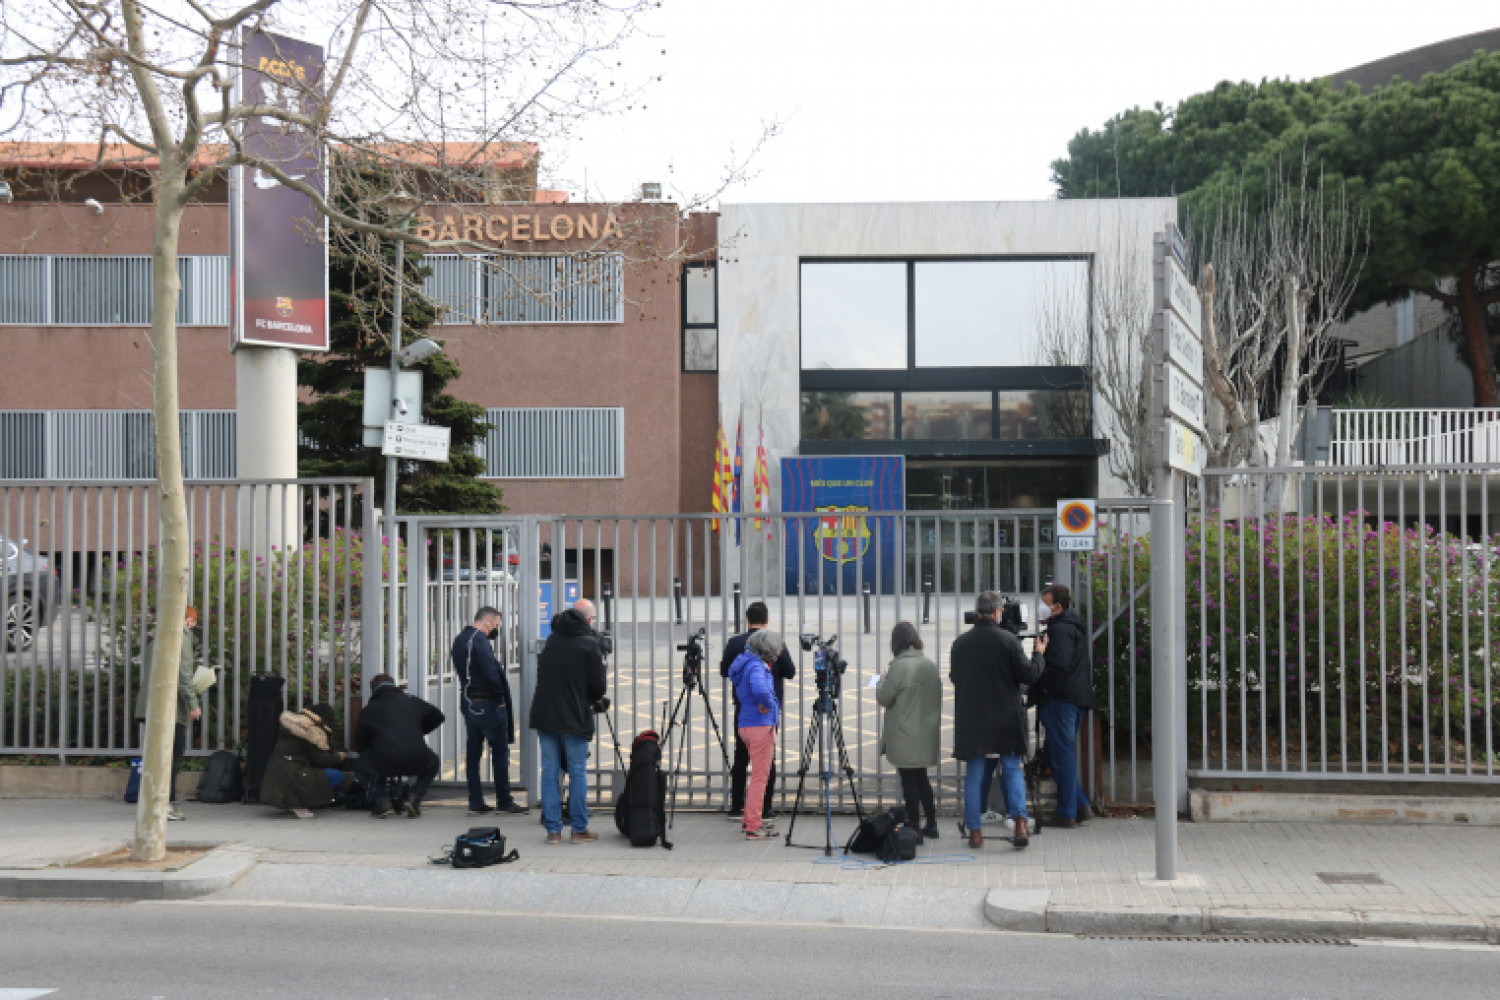 FC Barcelona offices being searched on March 1, 2021 (by Miquel Codolar)